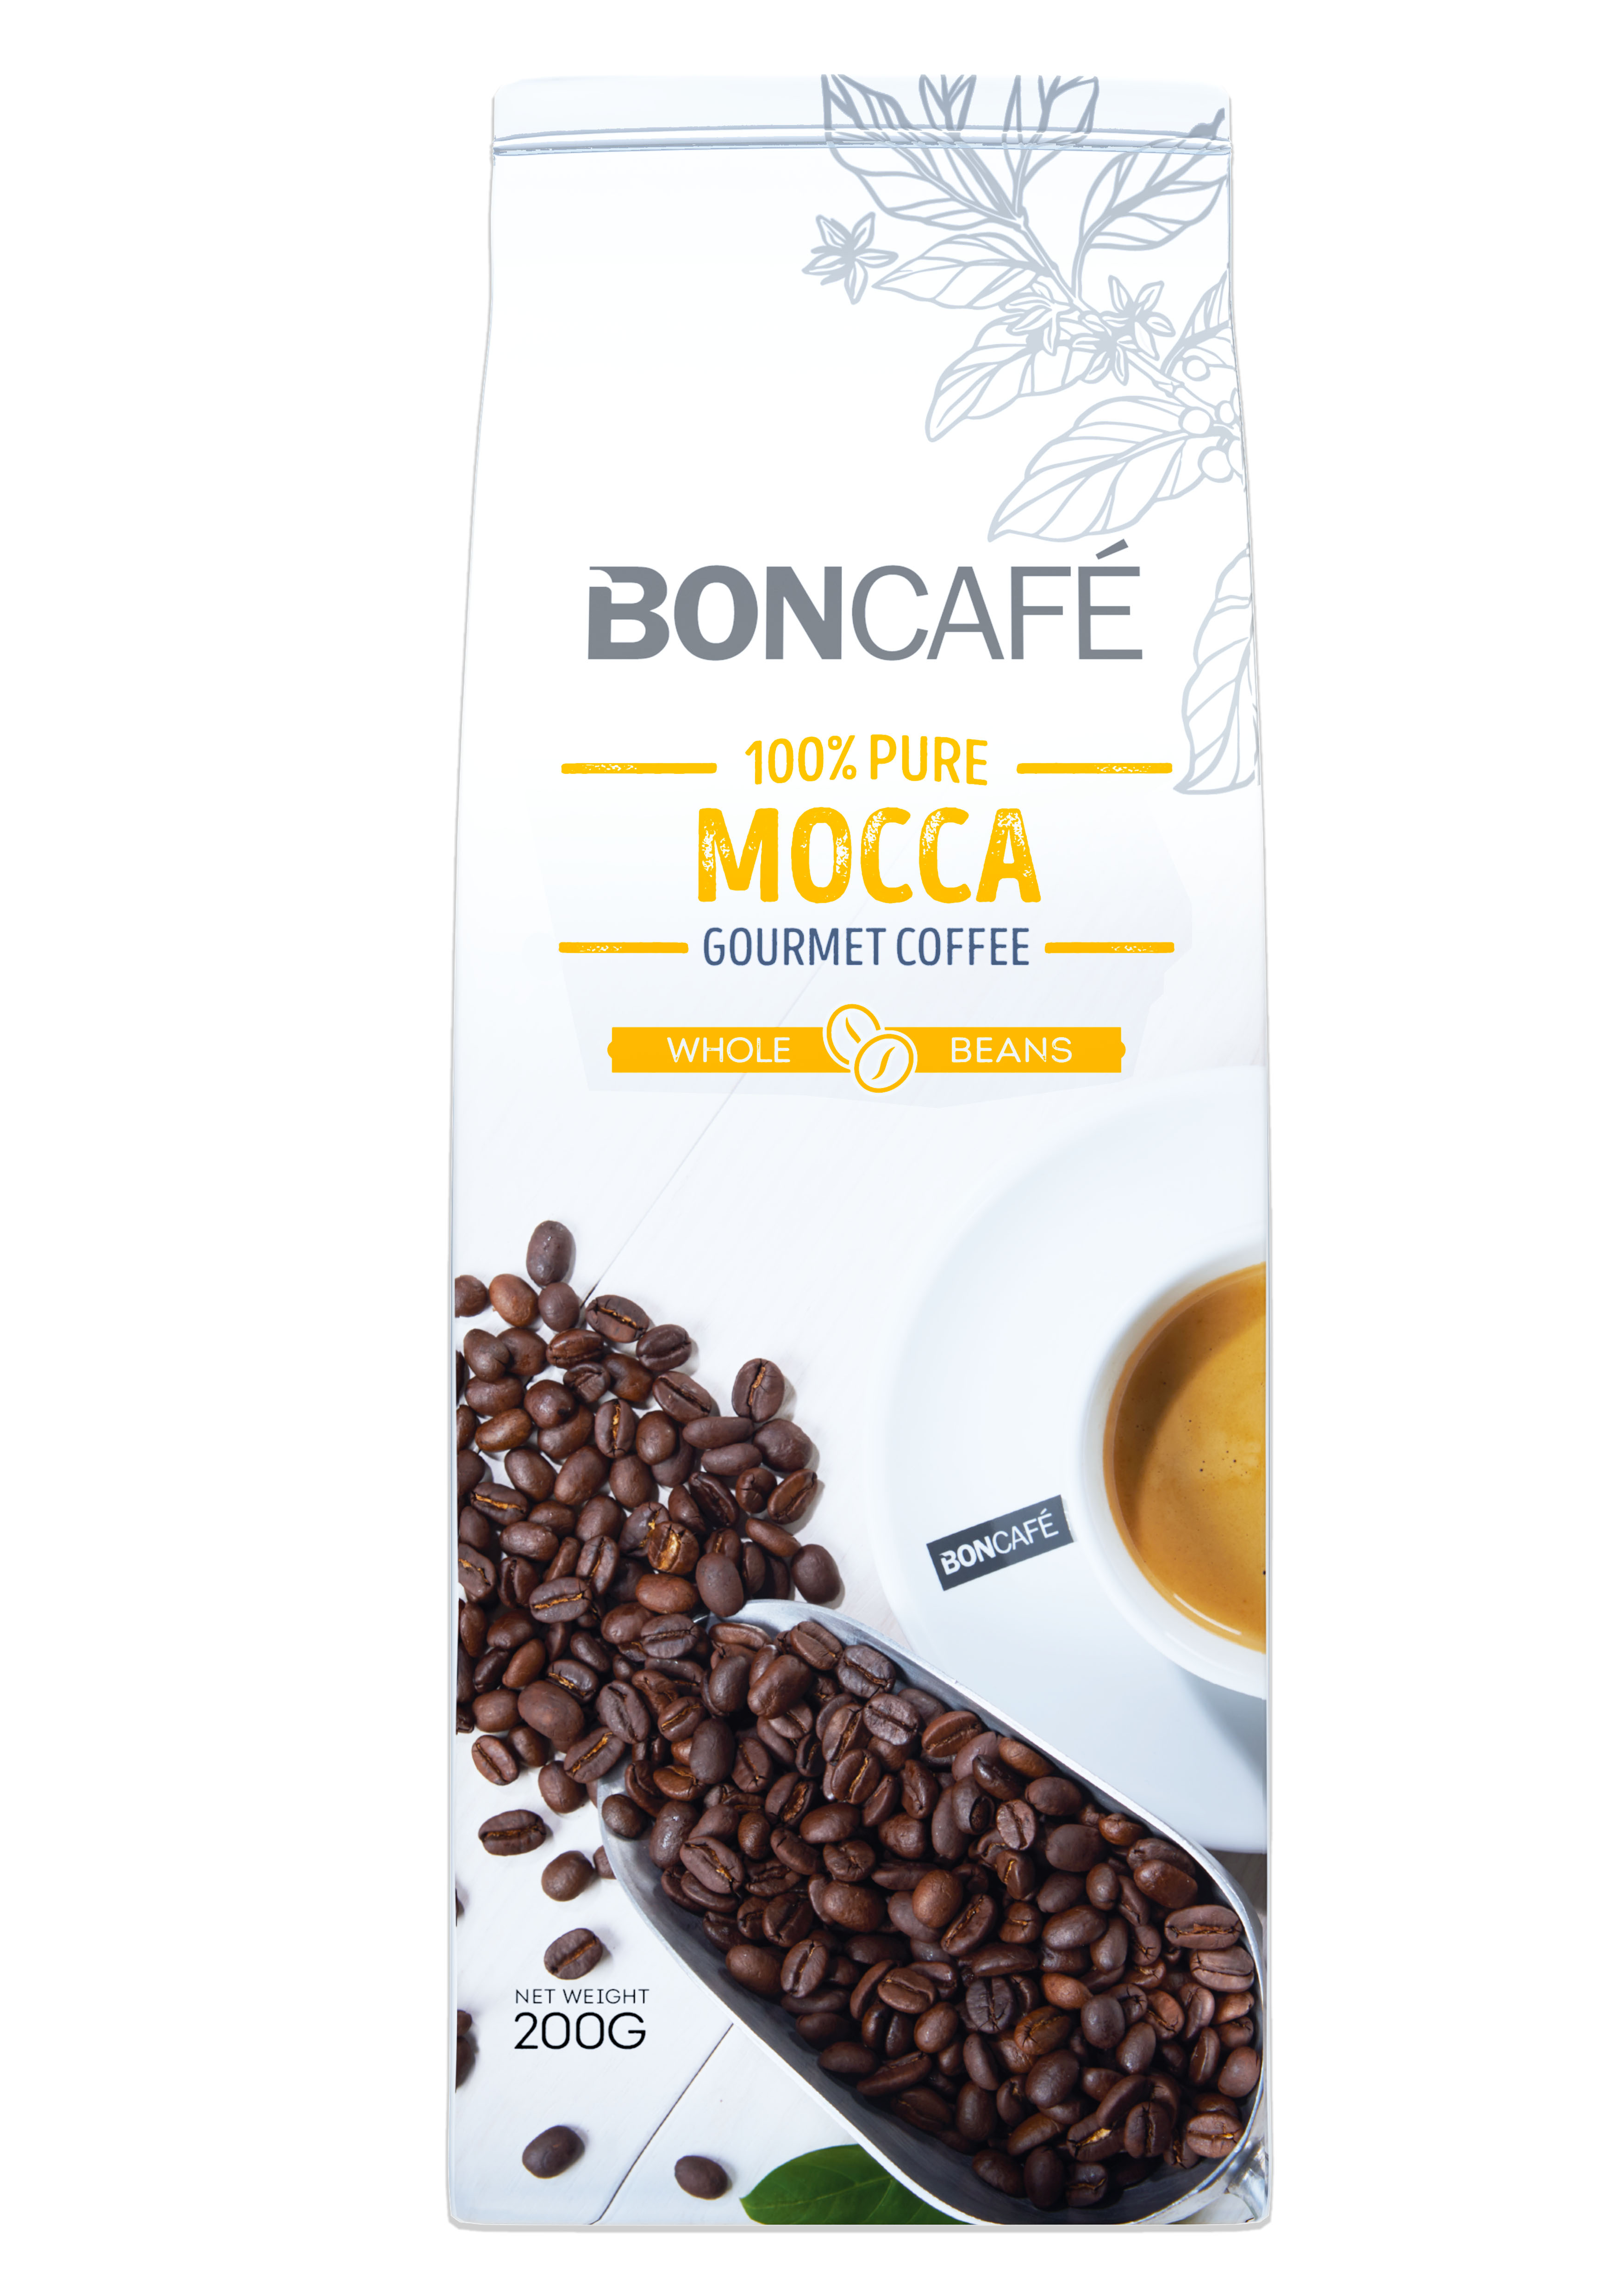 BONCAFÉ - GOURMET COLLECTION COFFEE BEAN: MOCCA BLEND